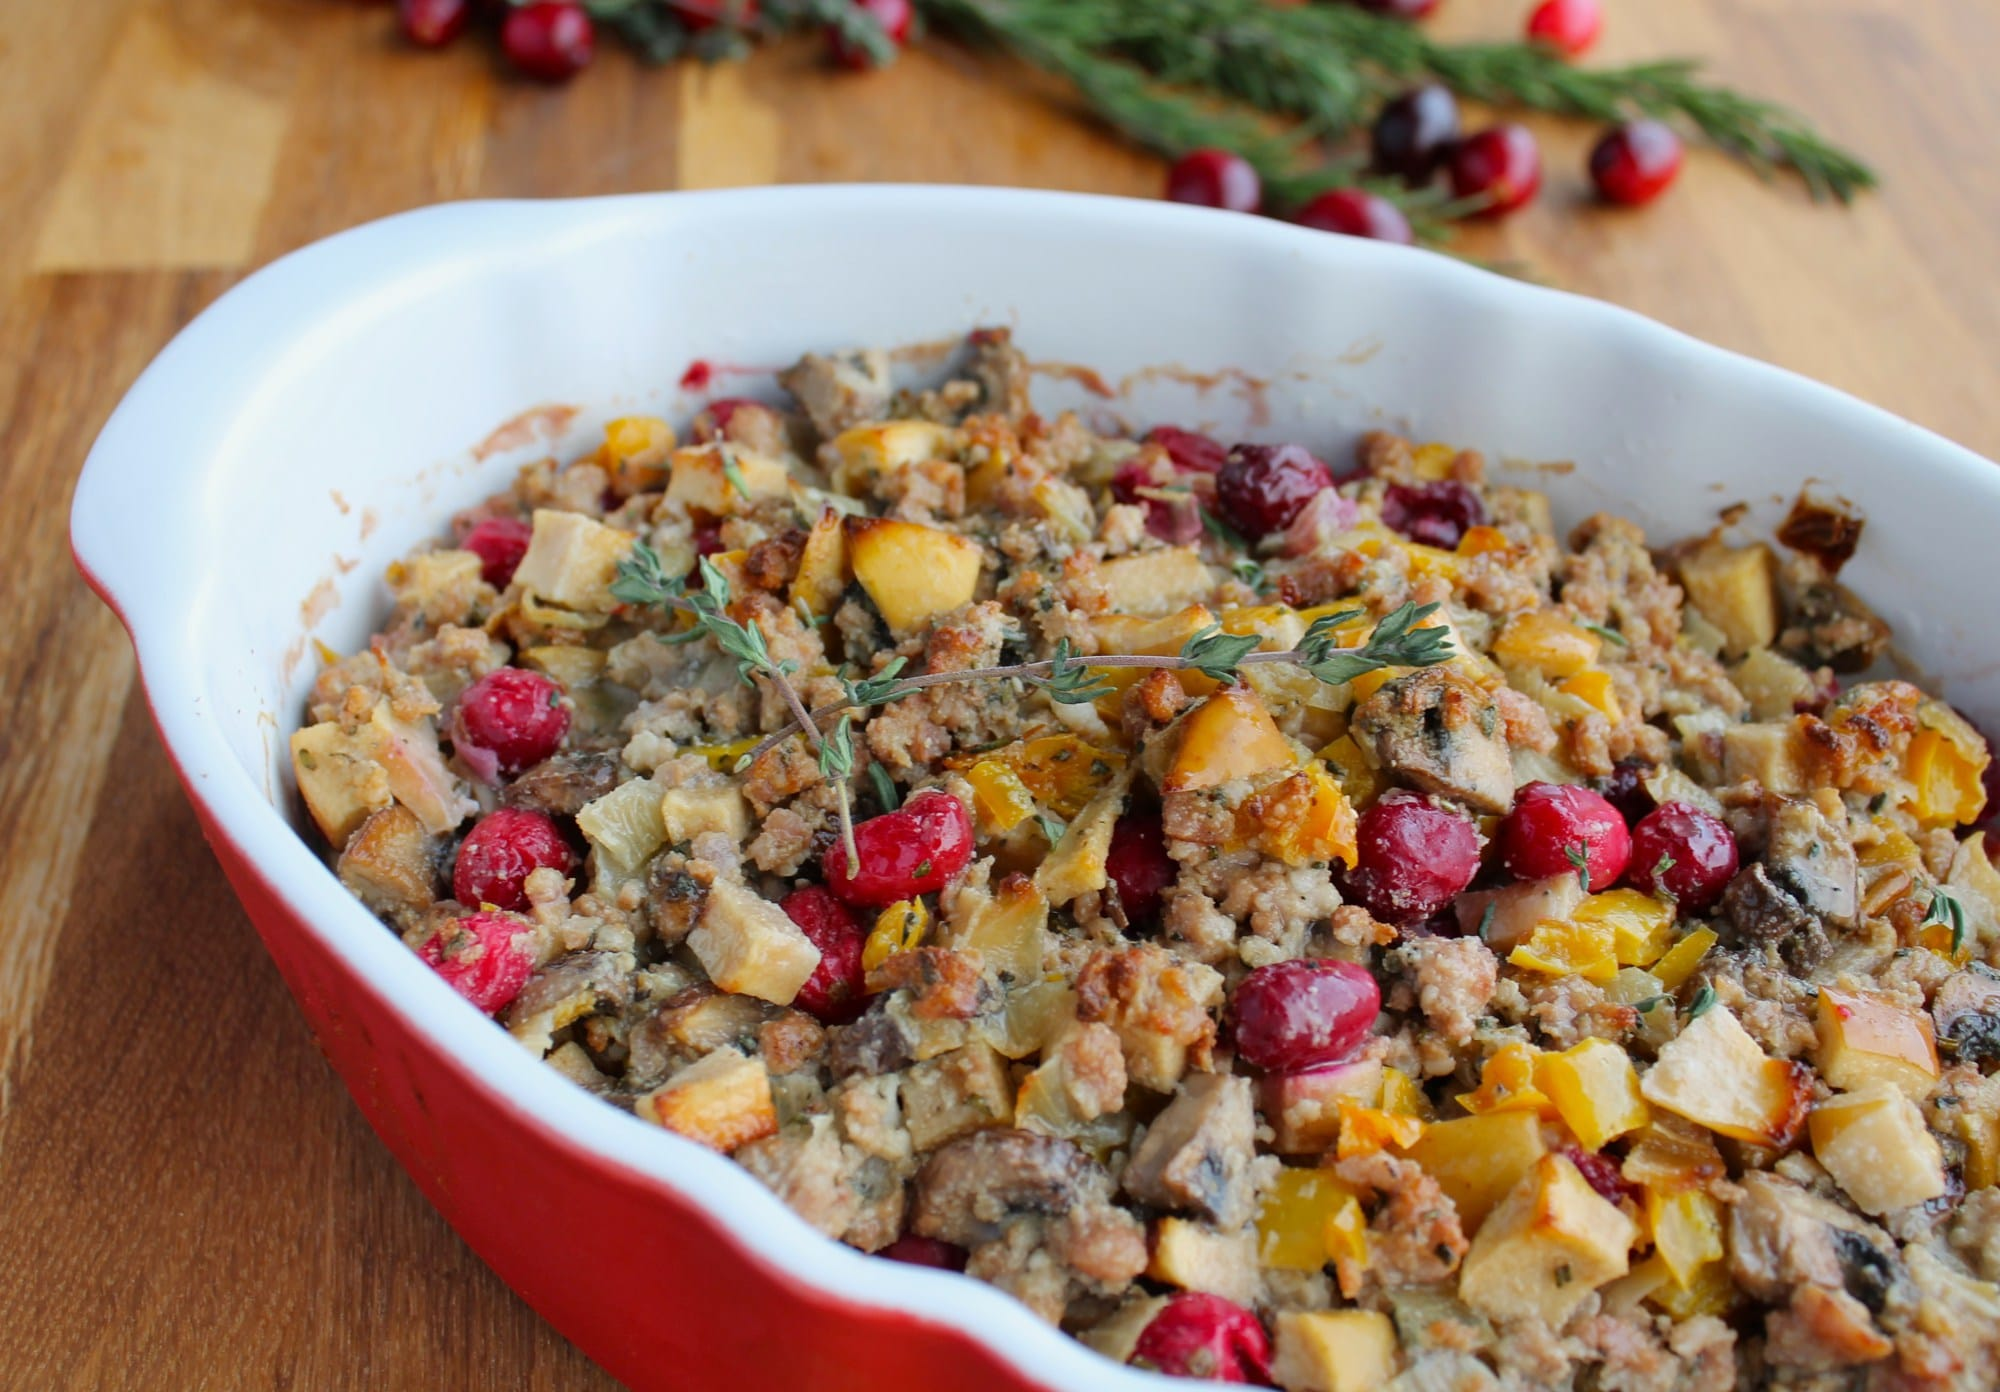 stuffing paleo thanksgiving ever recipes recipe side dressing homestyle gluten dishes delicious celery apple gross them zenbelly uncle